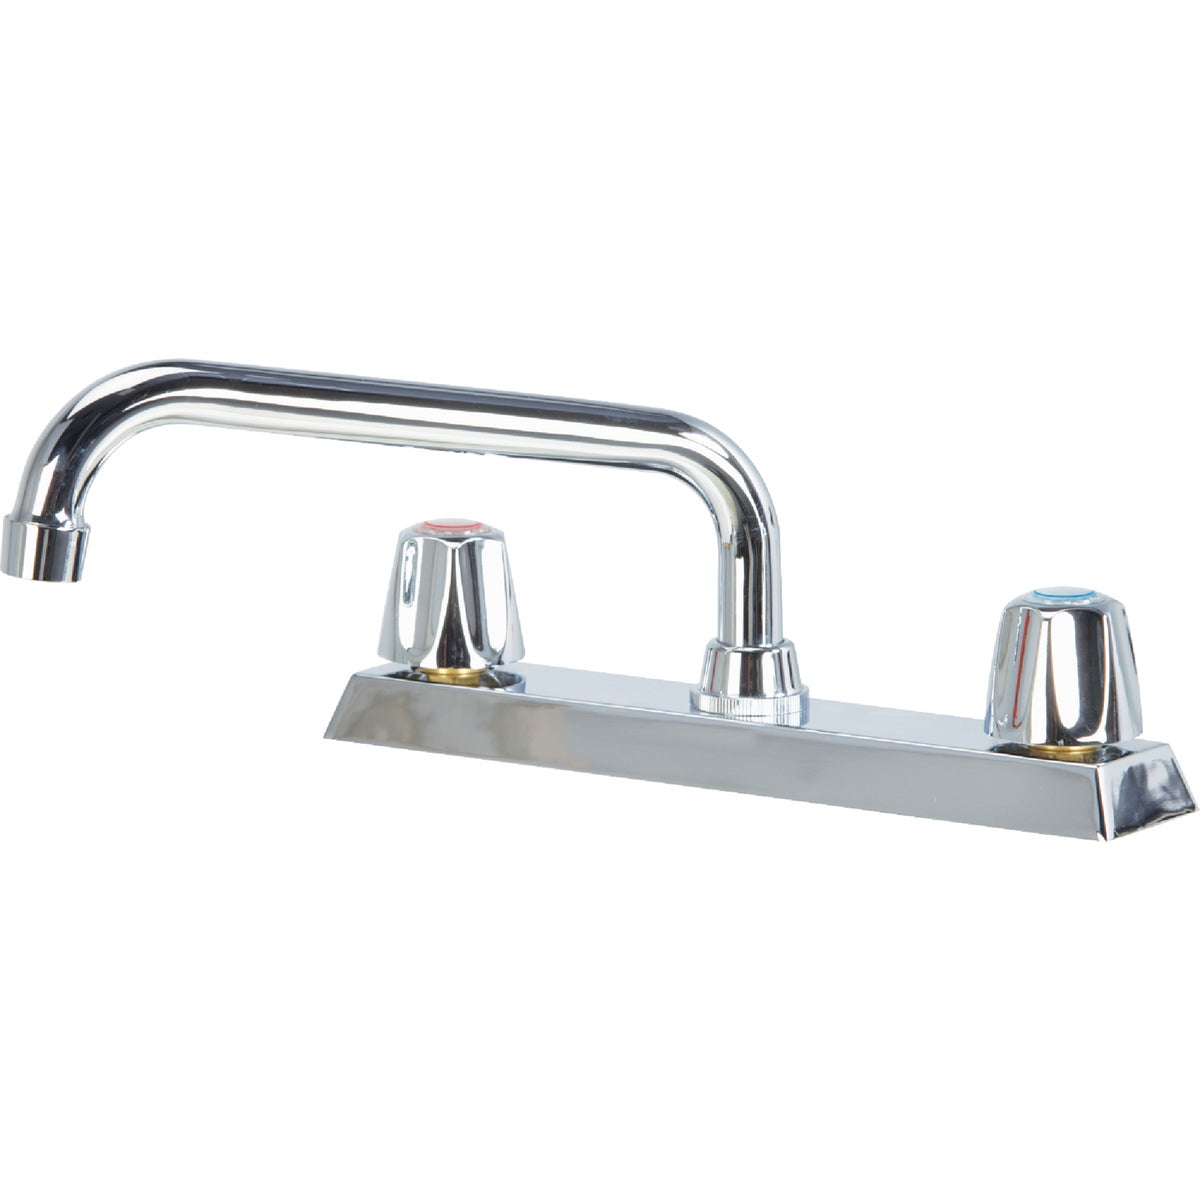 CHR KITCHEN FAUCET - F82K1000CP-JPA3 by Globe Union